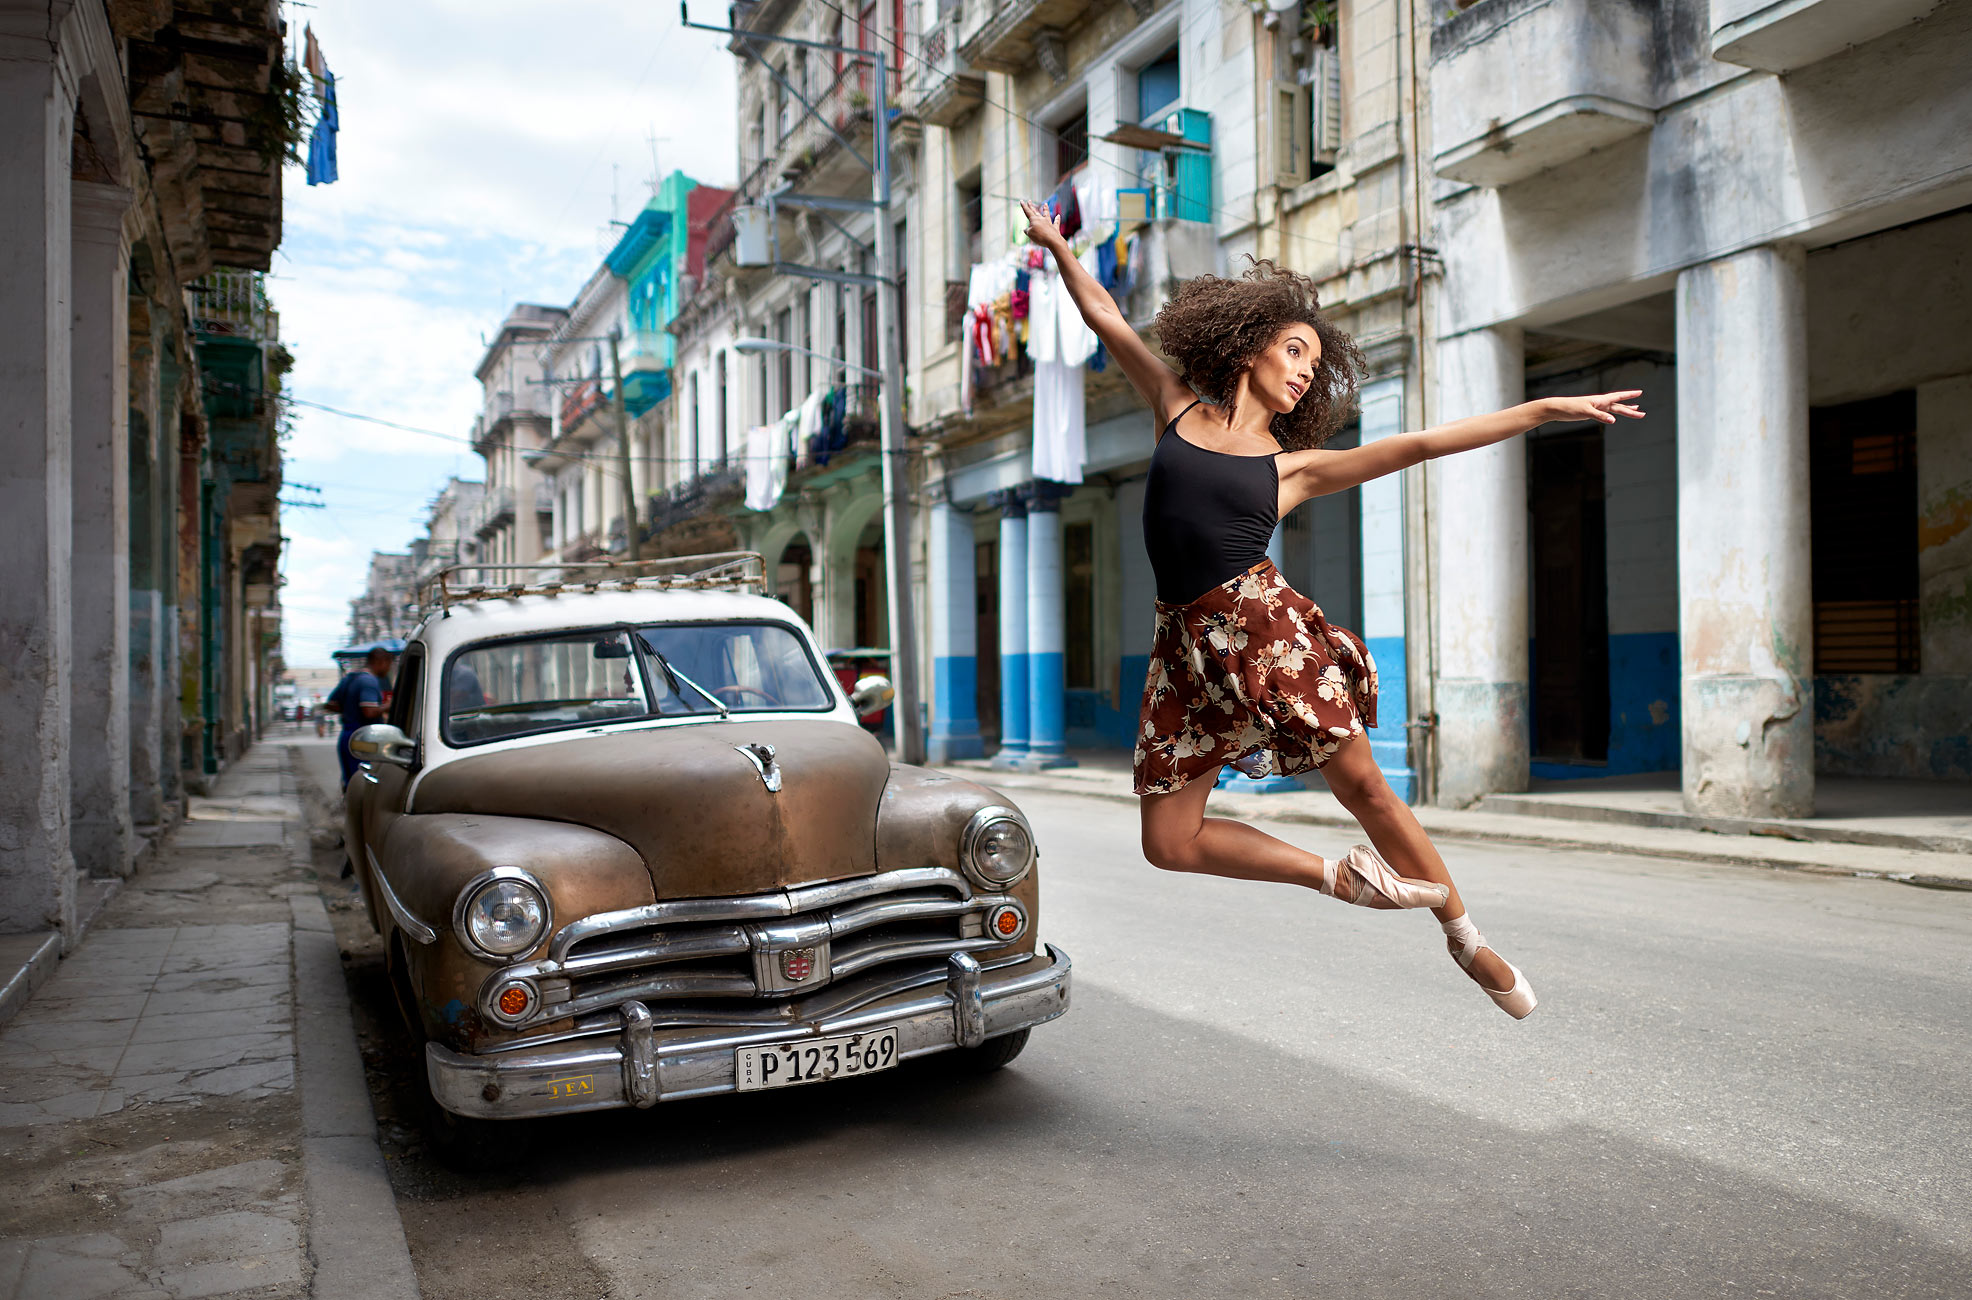 Cuban Ballerina Brenda Estrada jumping next to old car.